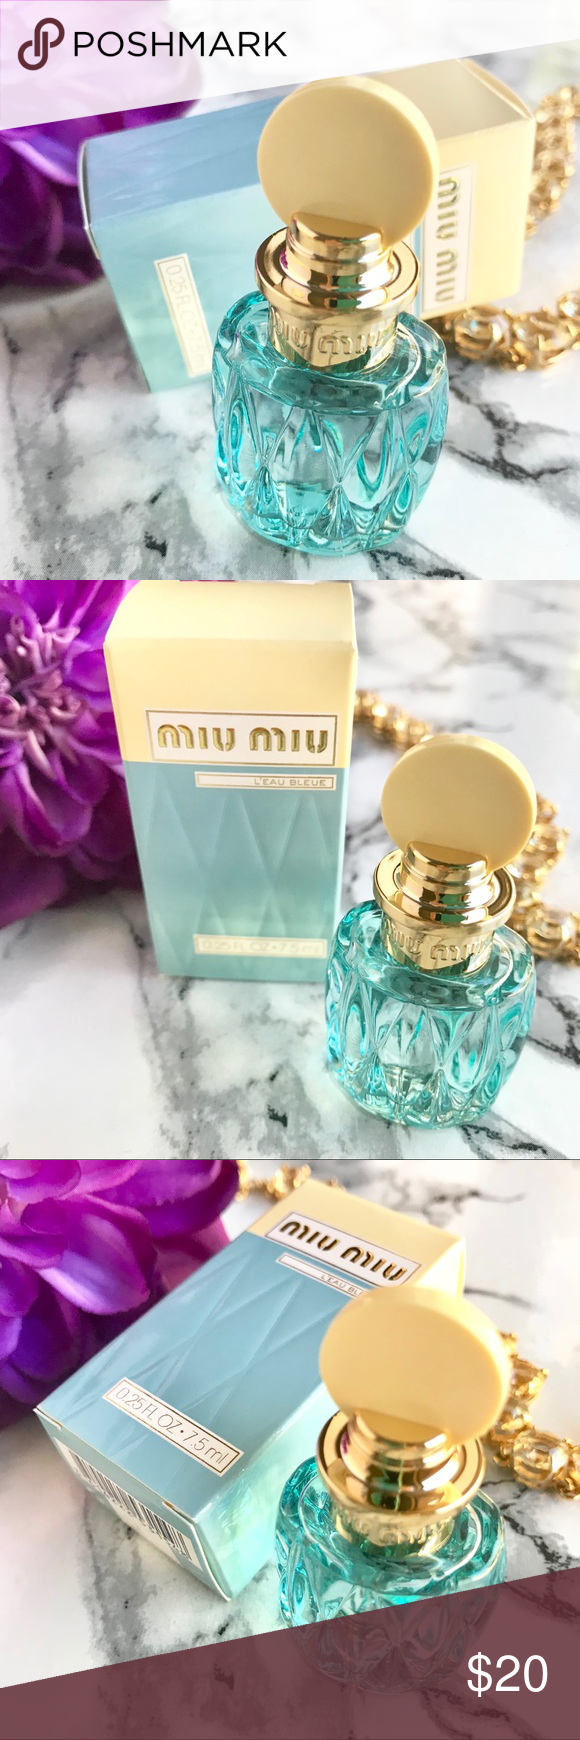 🆕NIB ✨ MIU MIU L'eau Blue Collector Bottle  🍃 🆕NIB ✨ MIU MIU L'eau Blue Collector Bottle  🍃  Travel Size .25oz 🍃 Brand New, Never Opened 🍃 Great to have a mini stylish bottle to carry around with you!  ✨NO TRADE💕Always NEW, Always AUTHENTIC✨ Come check out my NARS  * TOO Faced * Tarte * Urban Decay * Marc Jacobs * Bobbi Brown * BECCA * DIOR * Givenchy and More Cosmetics💕 Sephora Other